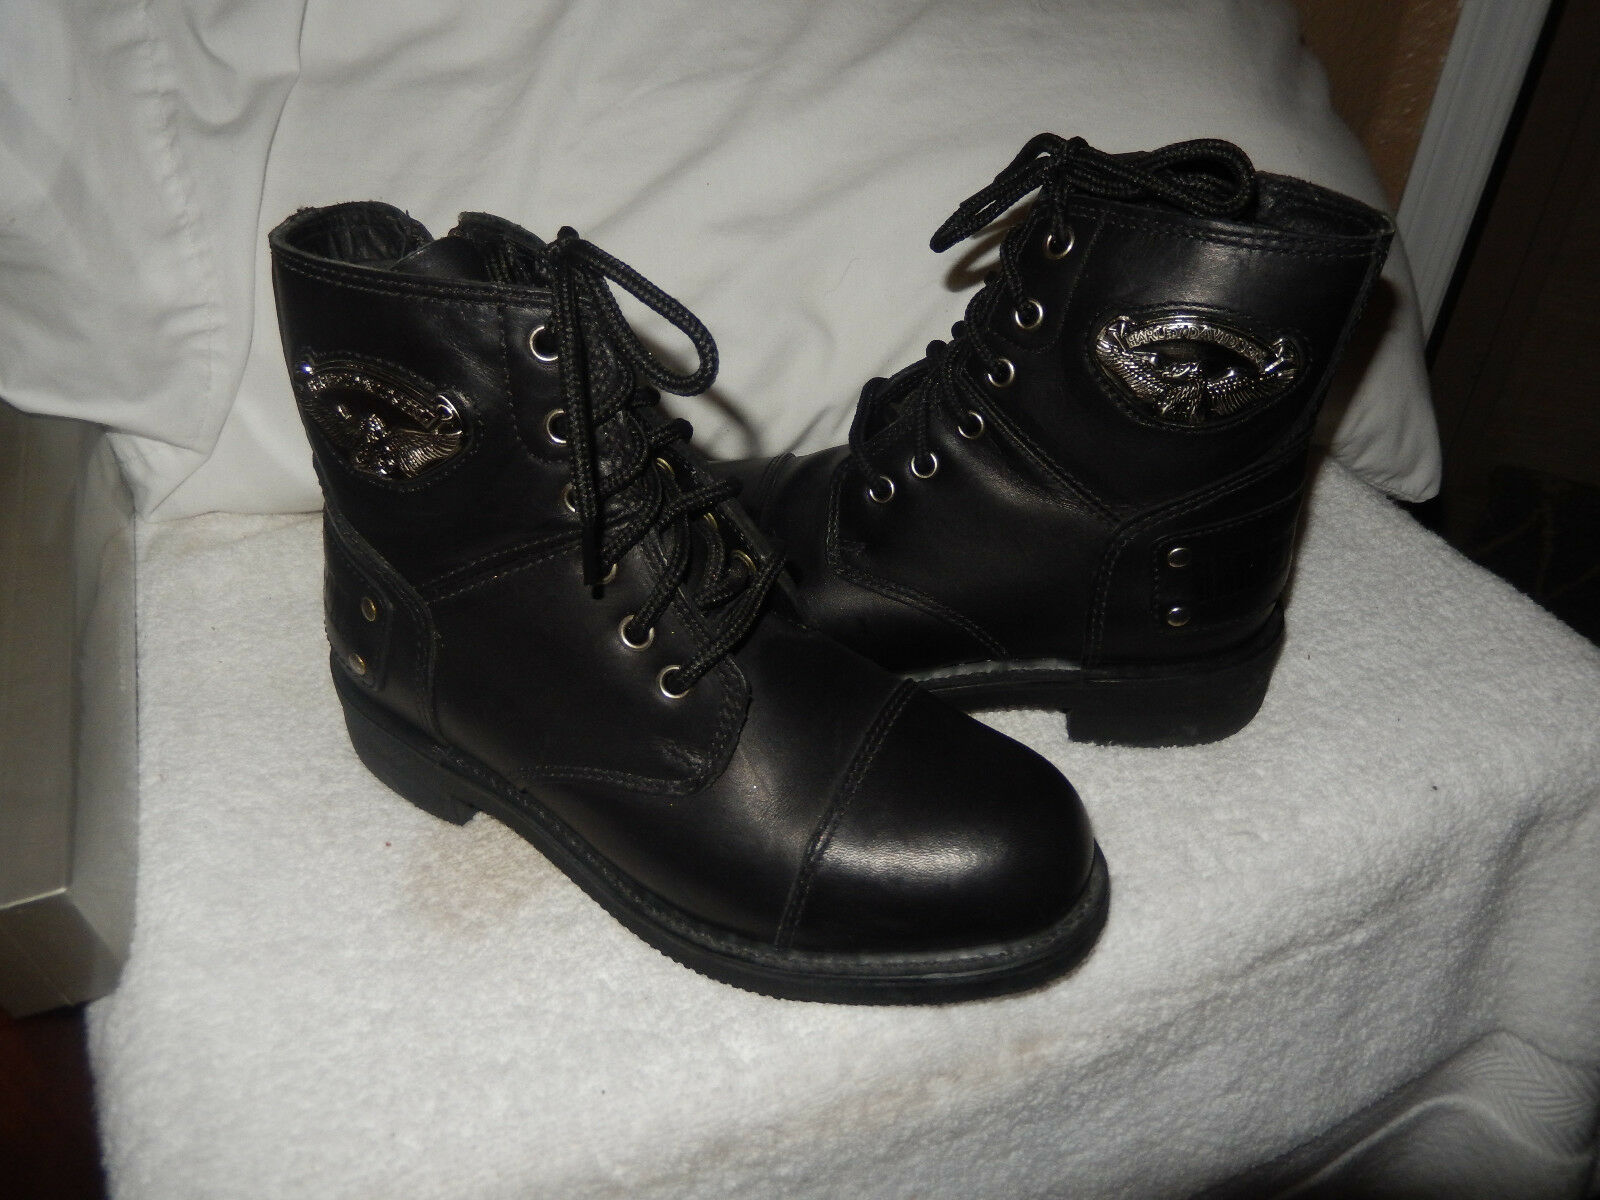 Harley Davidson Boots: Women's Leather Motorcycle Side Zip Logo Boots 88008 6.5